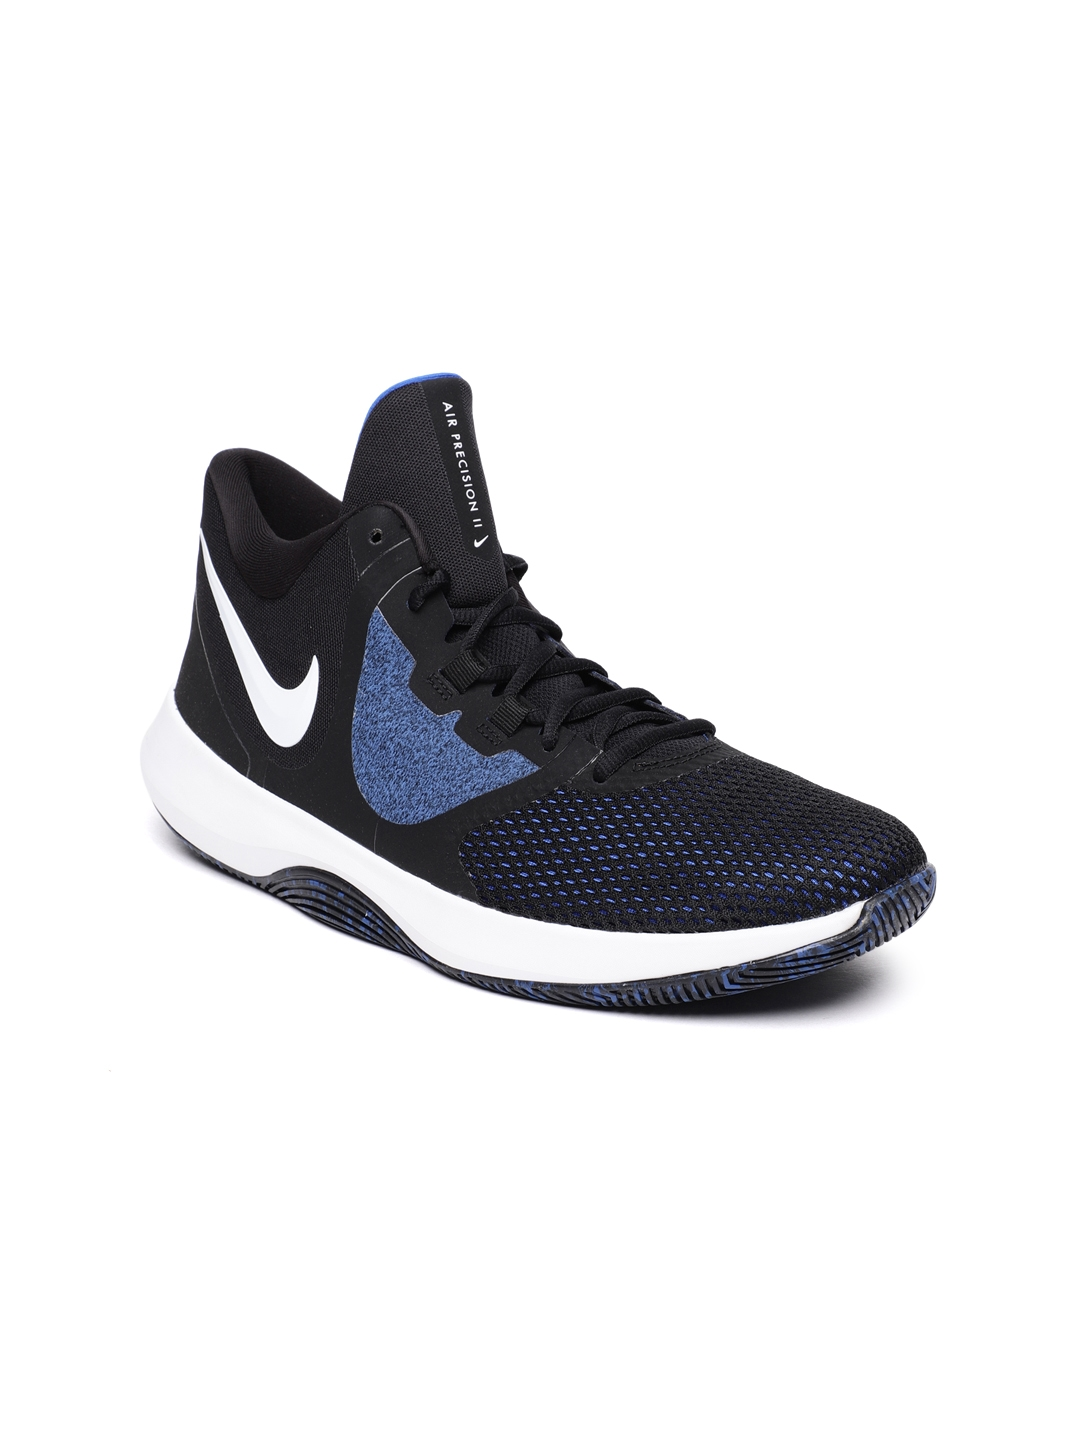 aae3d9285b1 Buy Nike Men Black   Blue Air Precision II Basketball Shoes - Sports ...